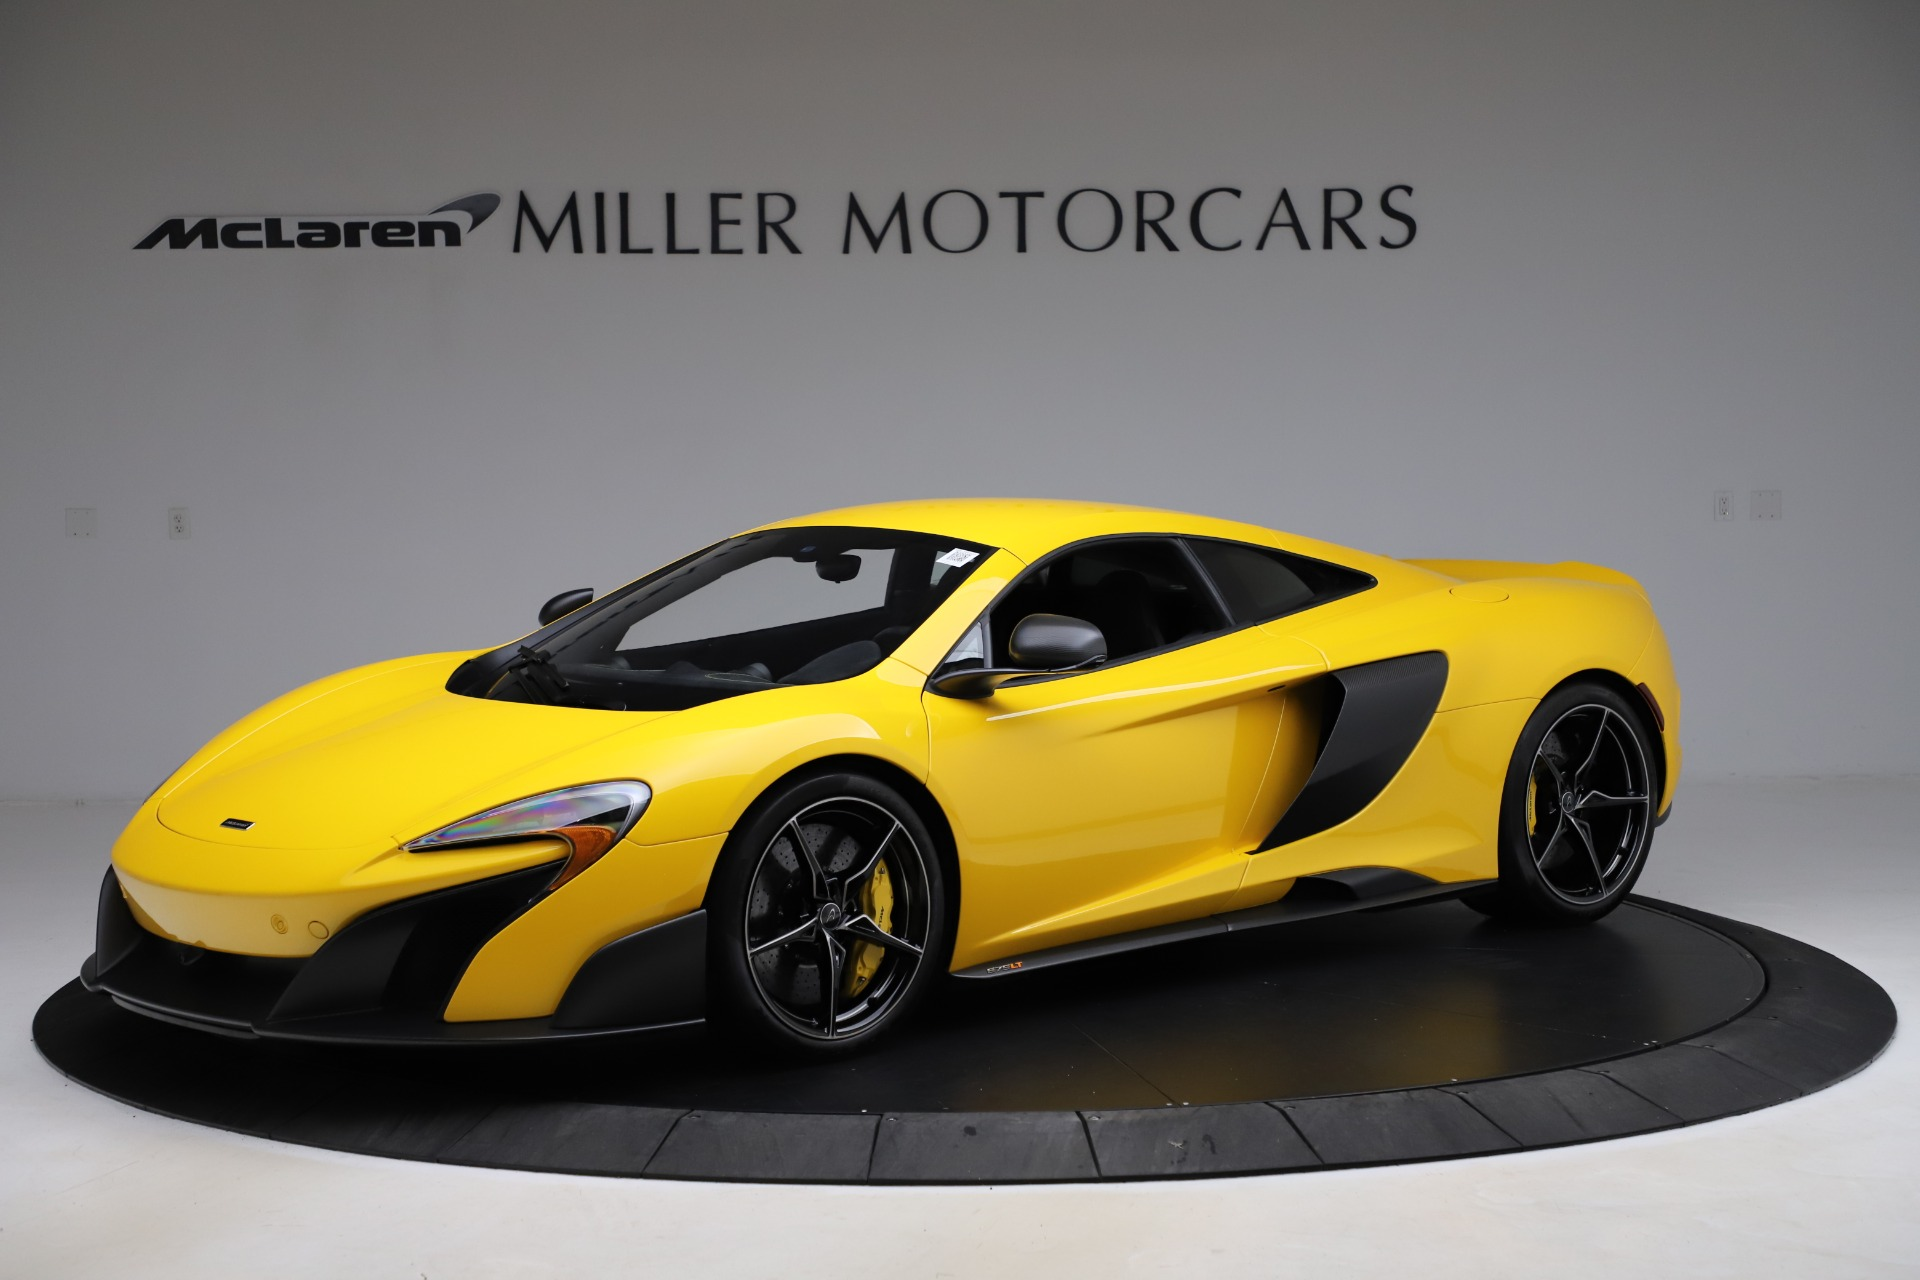 Used 2016 McLaren 675LT for sale $225,900 at Maserati of Westport in Westport CT 06880 1